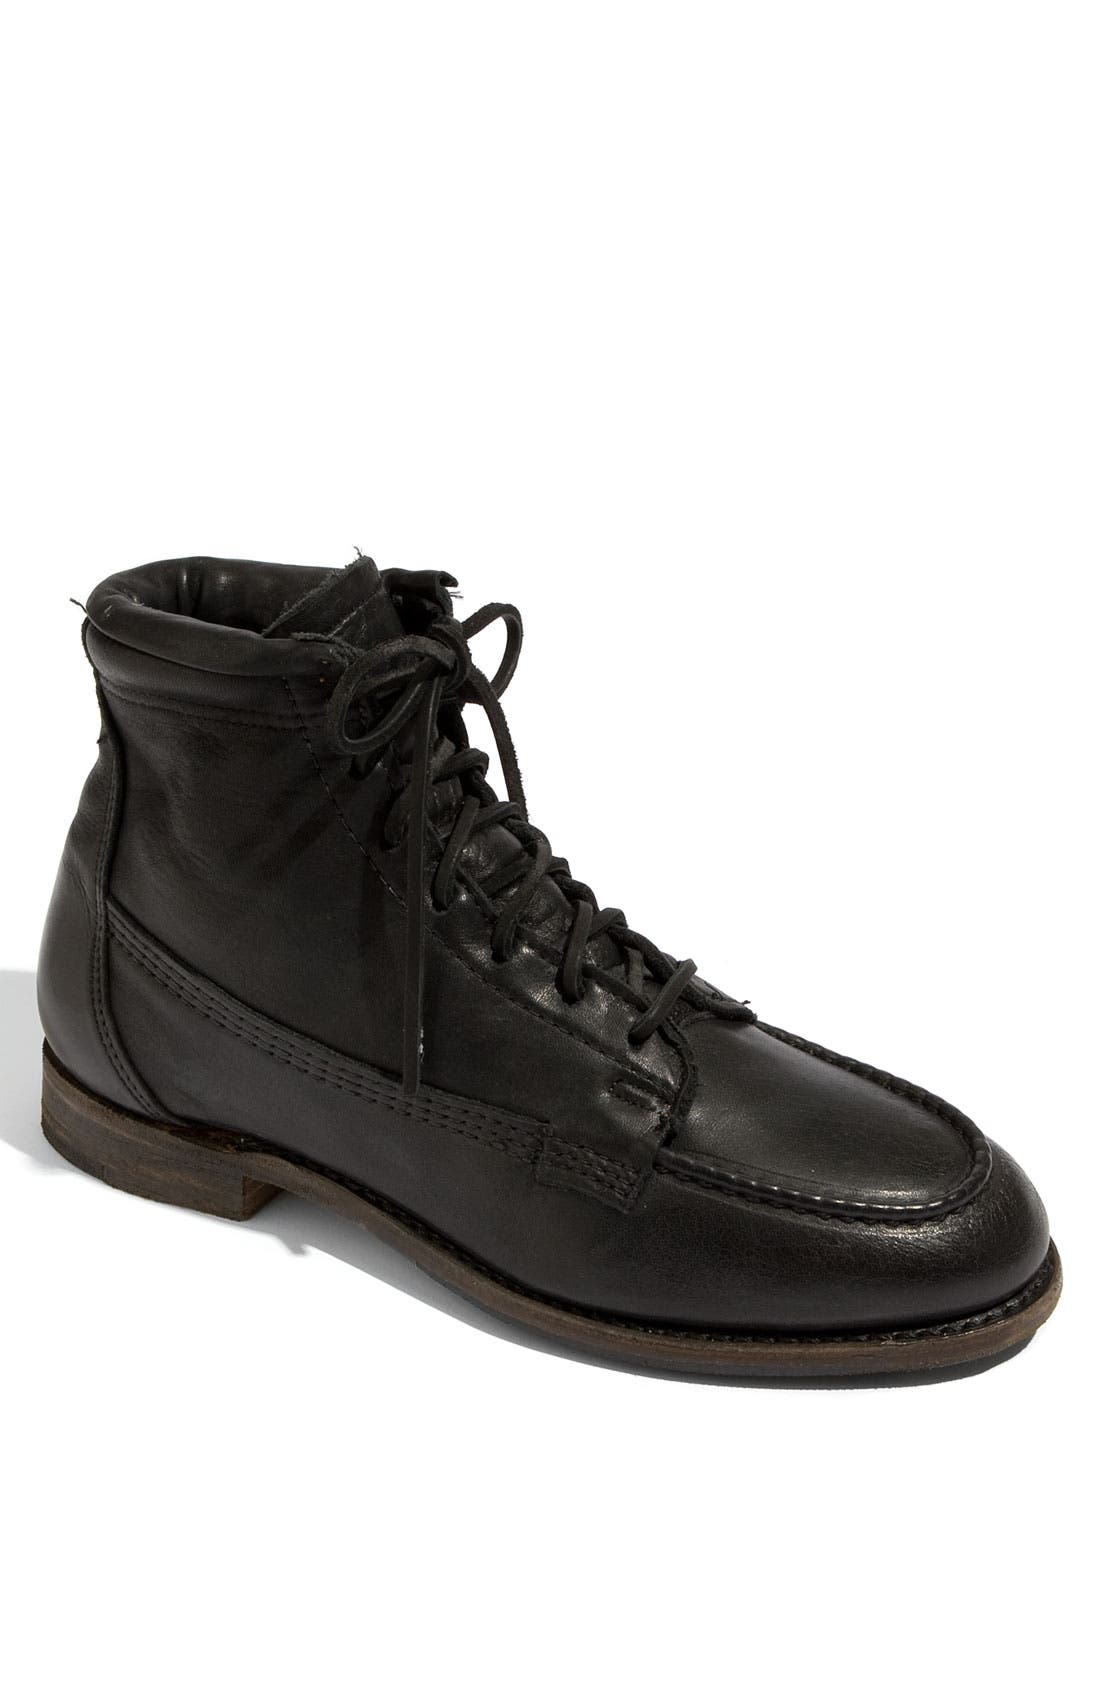 Alternate Image 1 Selected - Vintage Shoe Company 'Vincent' Boot